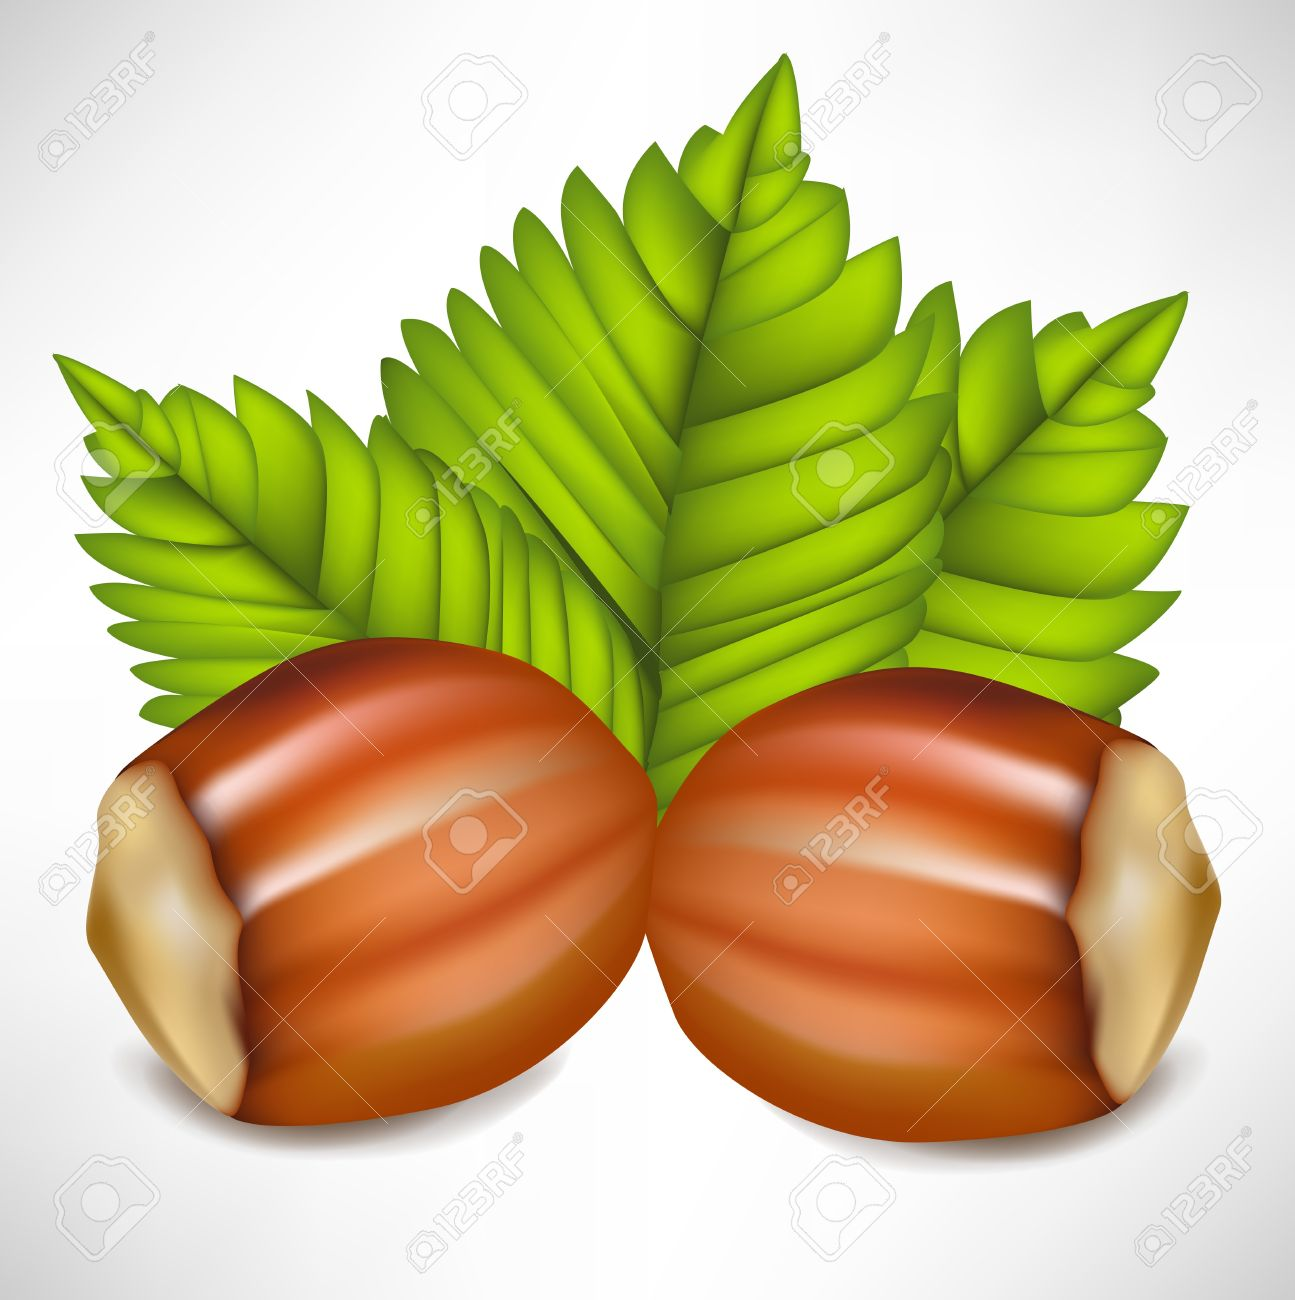 Two Hazelnuts In Shell Arrangement Royalty Free Cliparts, Vectors.